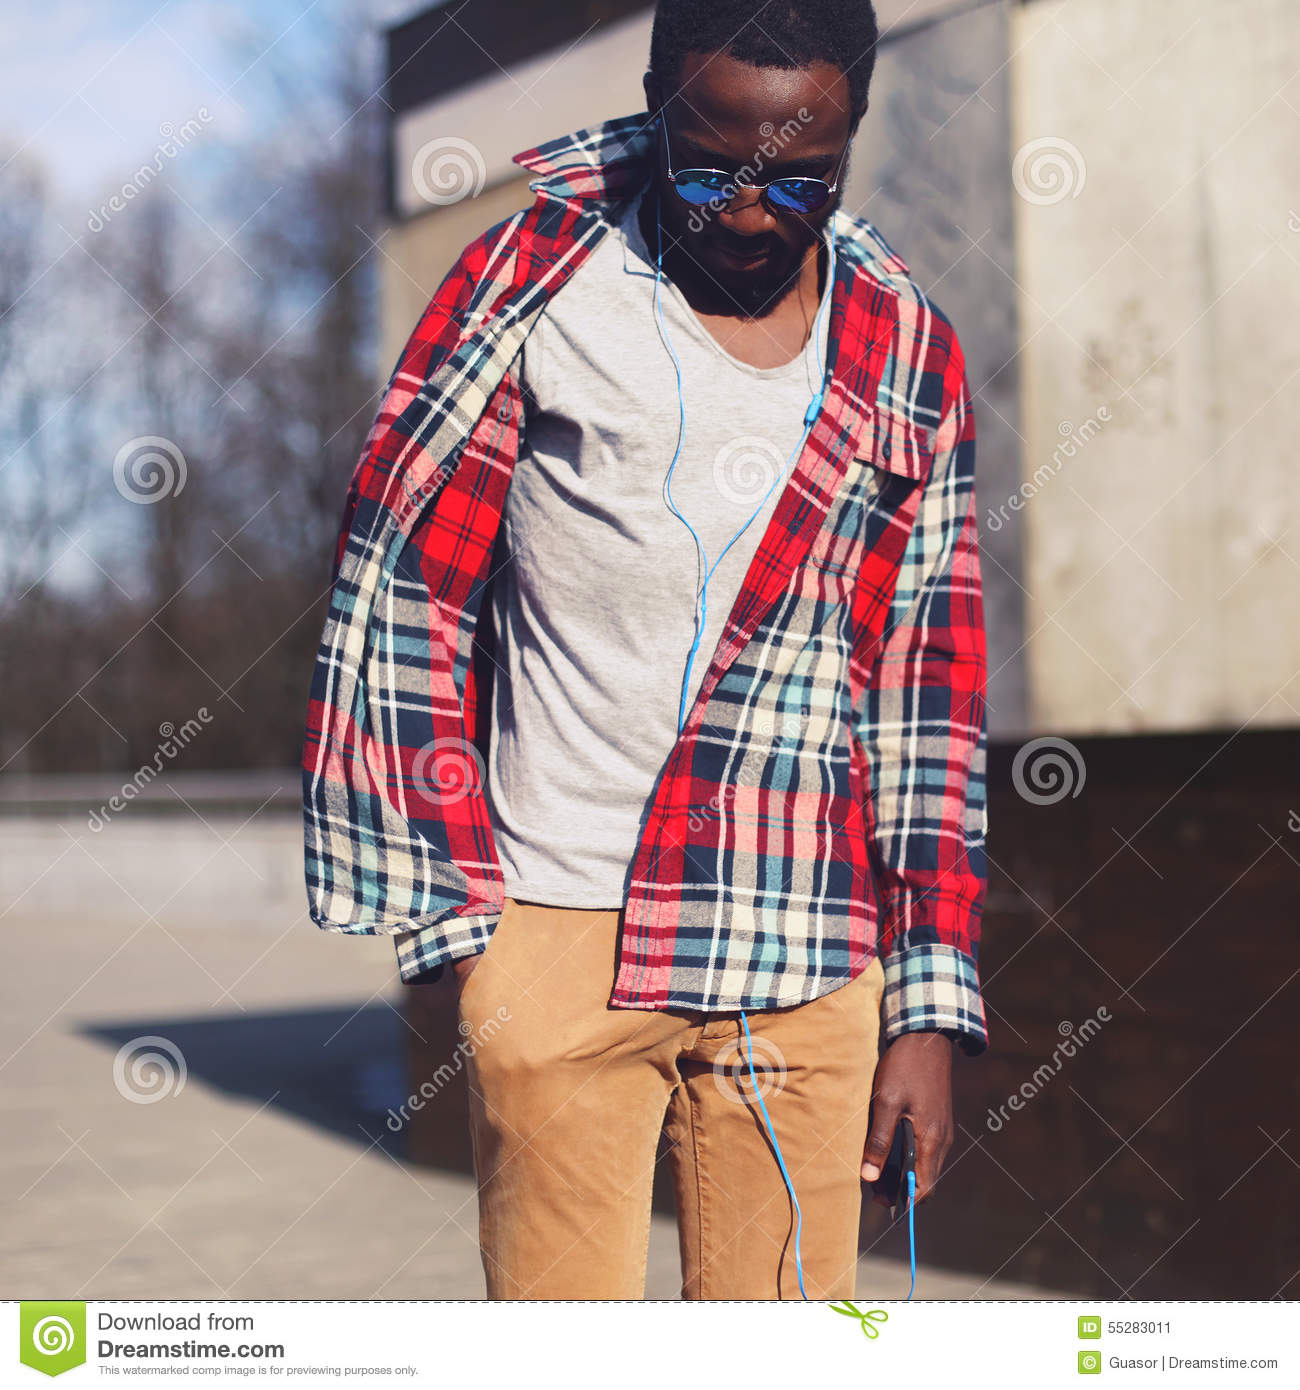 Street fashion concept - portrait of stylish young african man